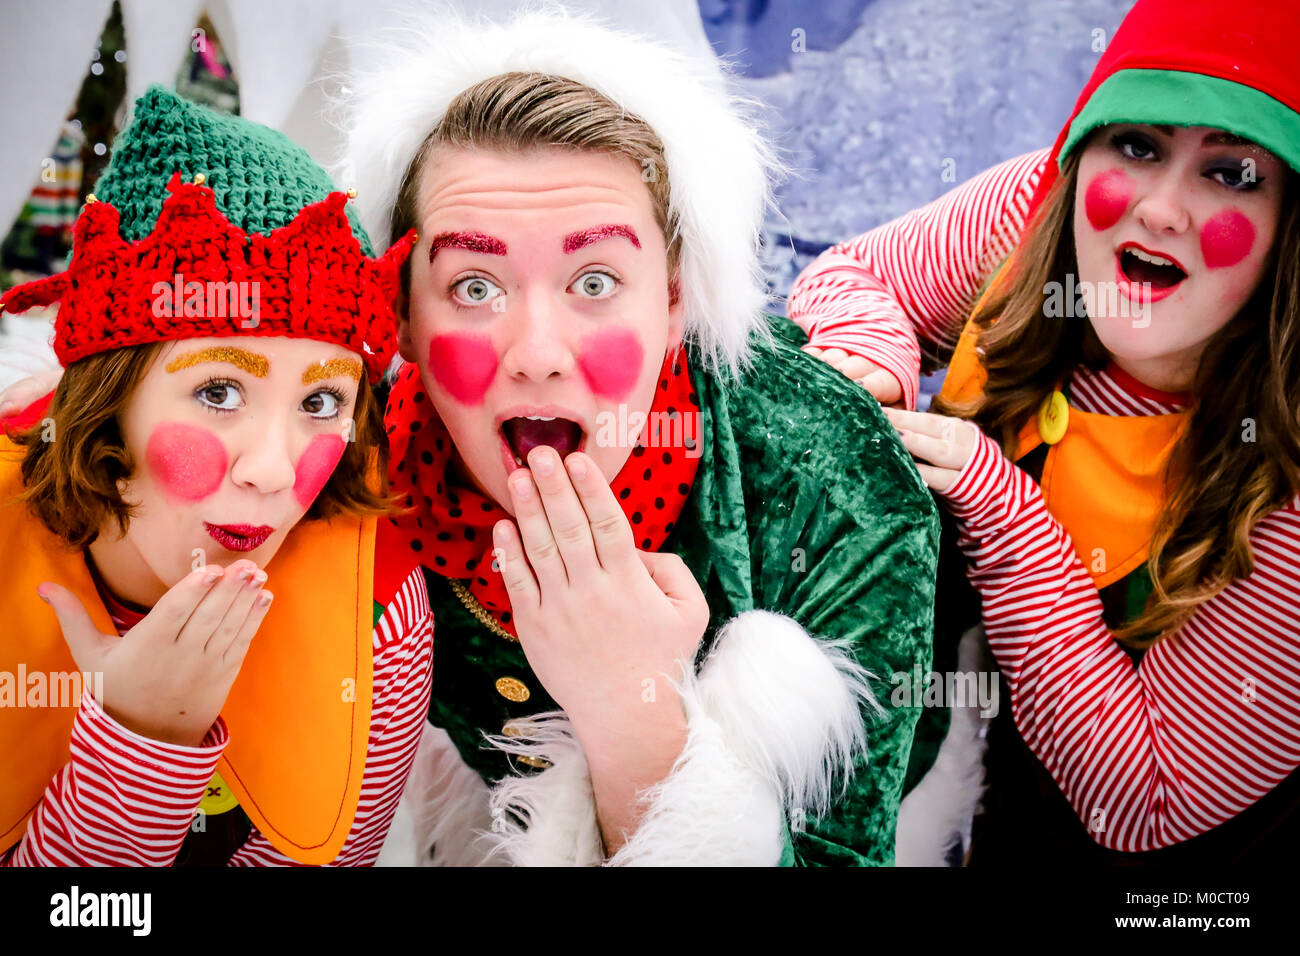 Christmas 'elves' at a Santa's grotto event - Stock Image